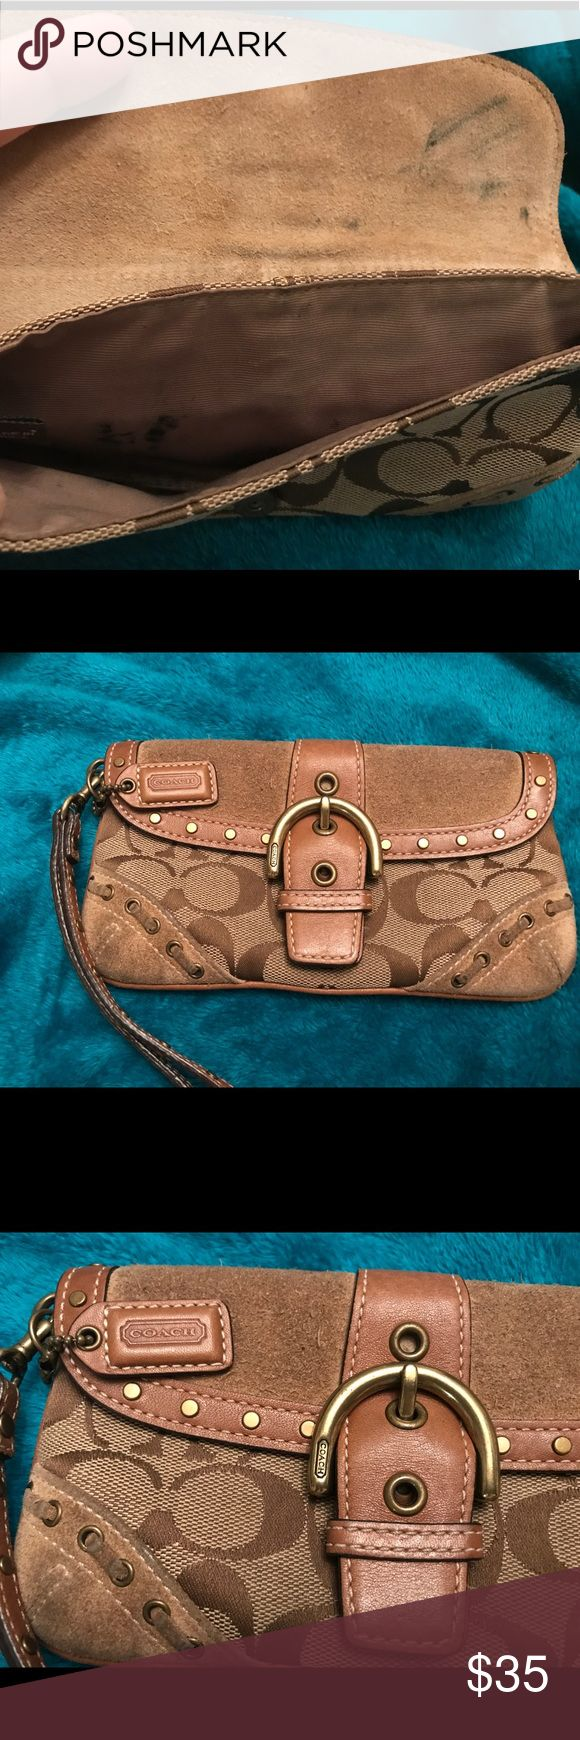 Coach clutch bag Good used condition. Small ink stain on inside. Coach Bags Clutches & Wristlets